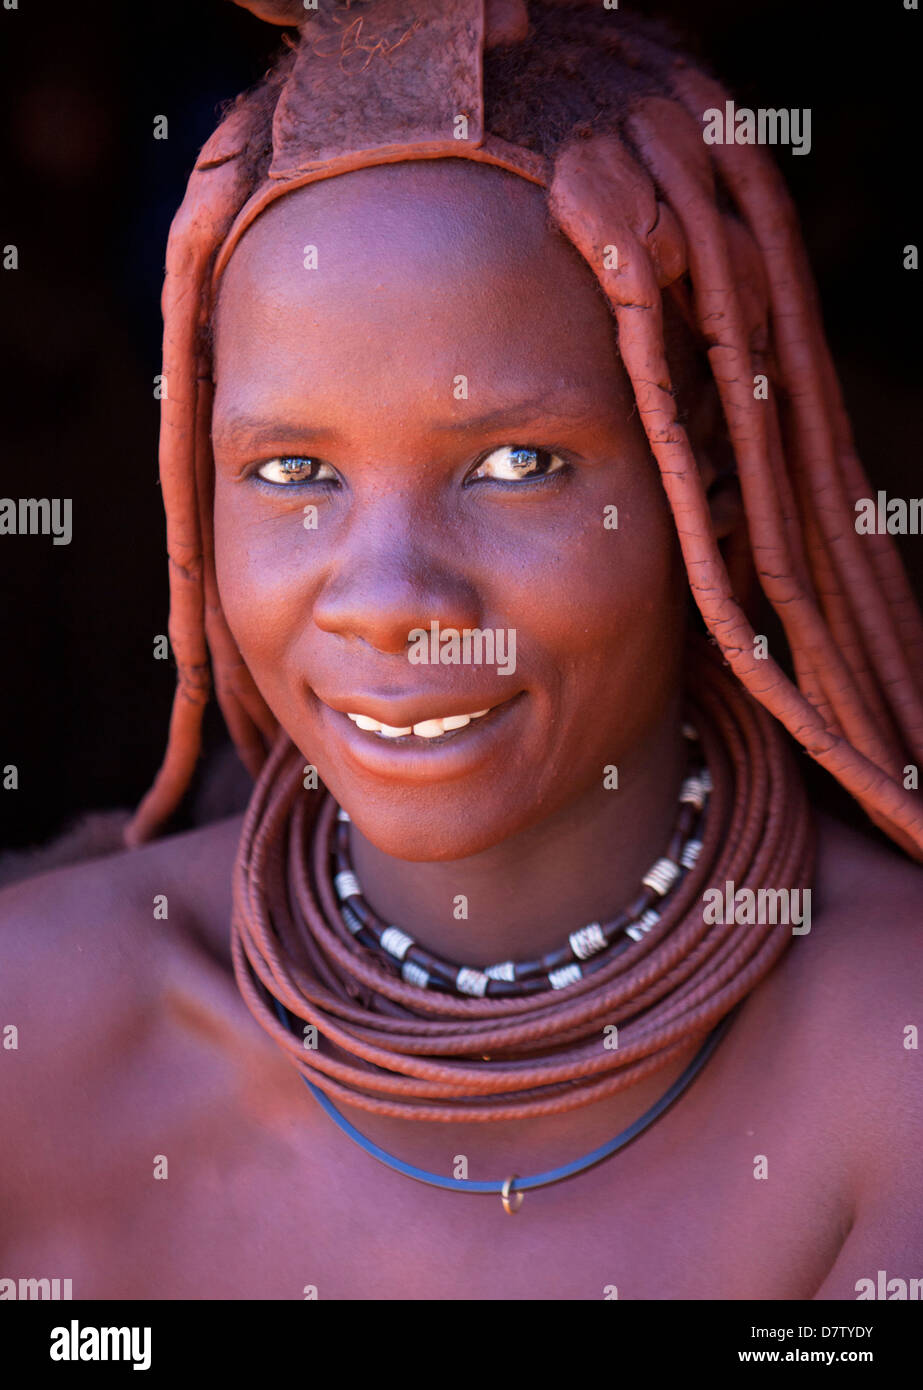 Himba woman wearing traditional dress with her skin covered in Otjize, Kunene Region, Kaokoland, Namibia - Stock Image